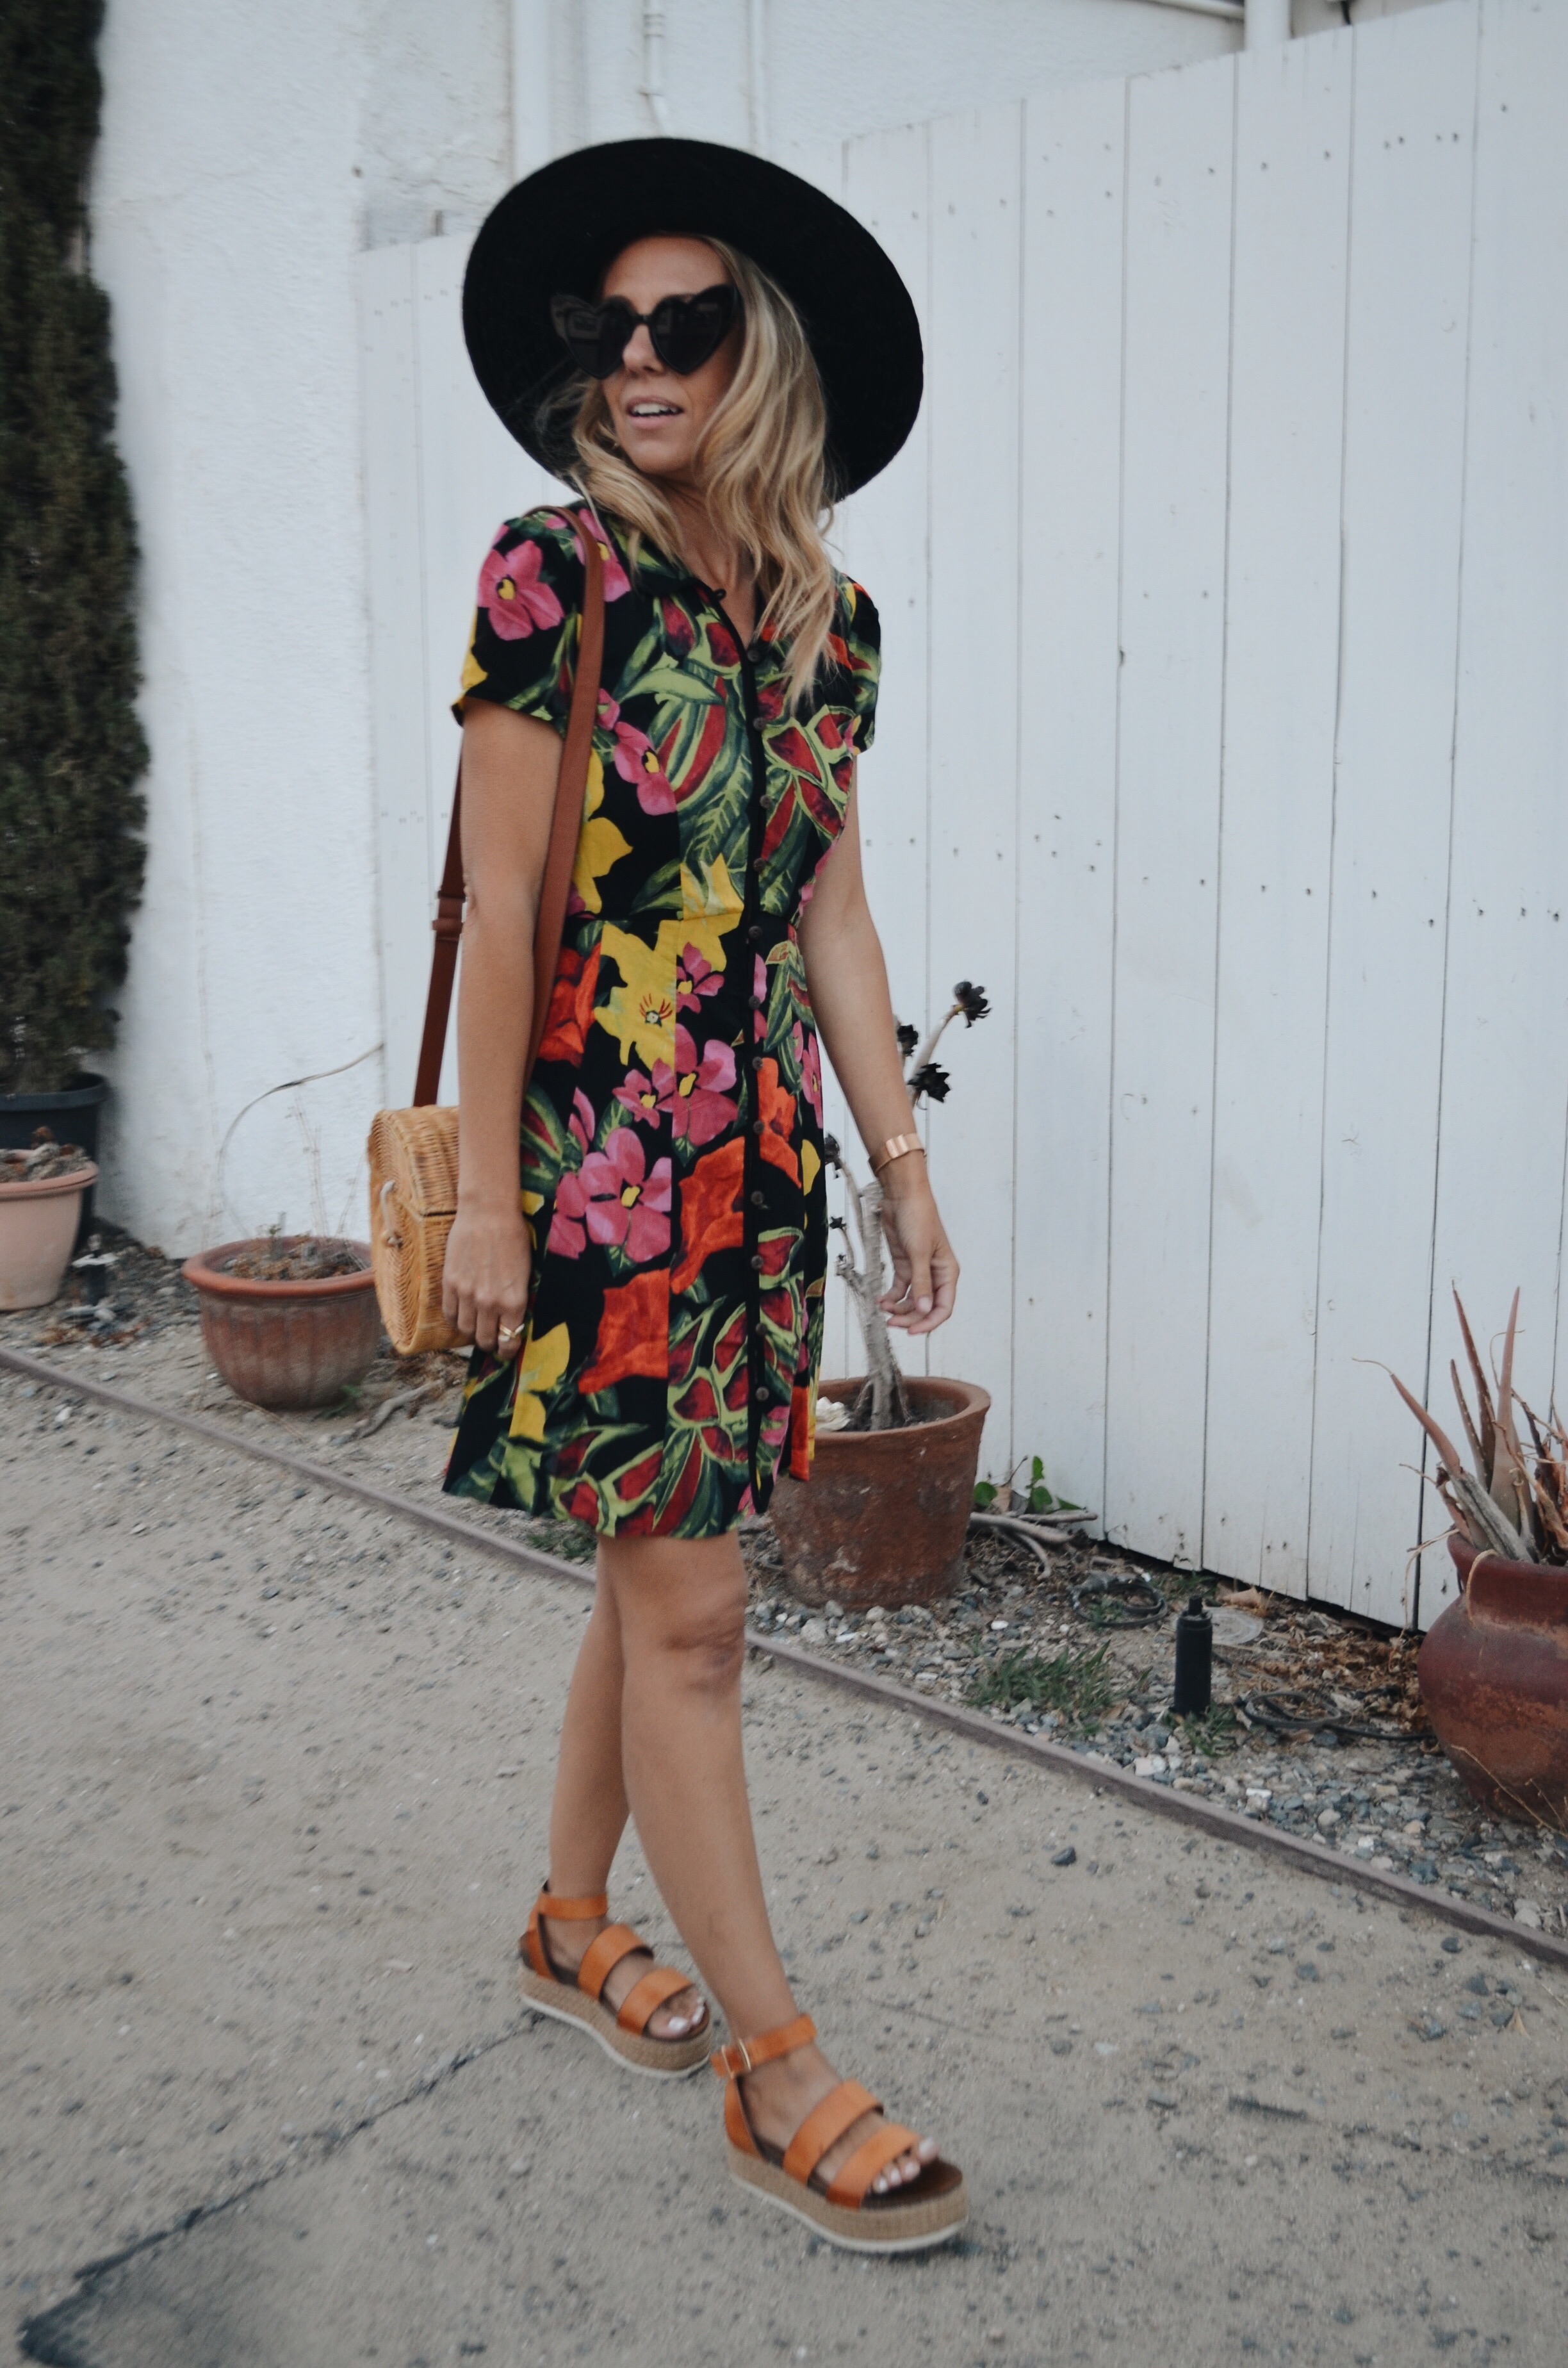 THE MUST HAVE SHOE TREND- PLATFORMS- Jaclyn De Leon Style + espadrille sandals + floral dress + straw handbag + black straw hat + casual street style + DSW